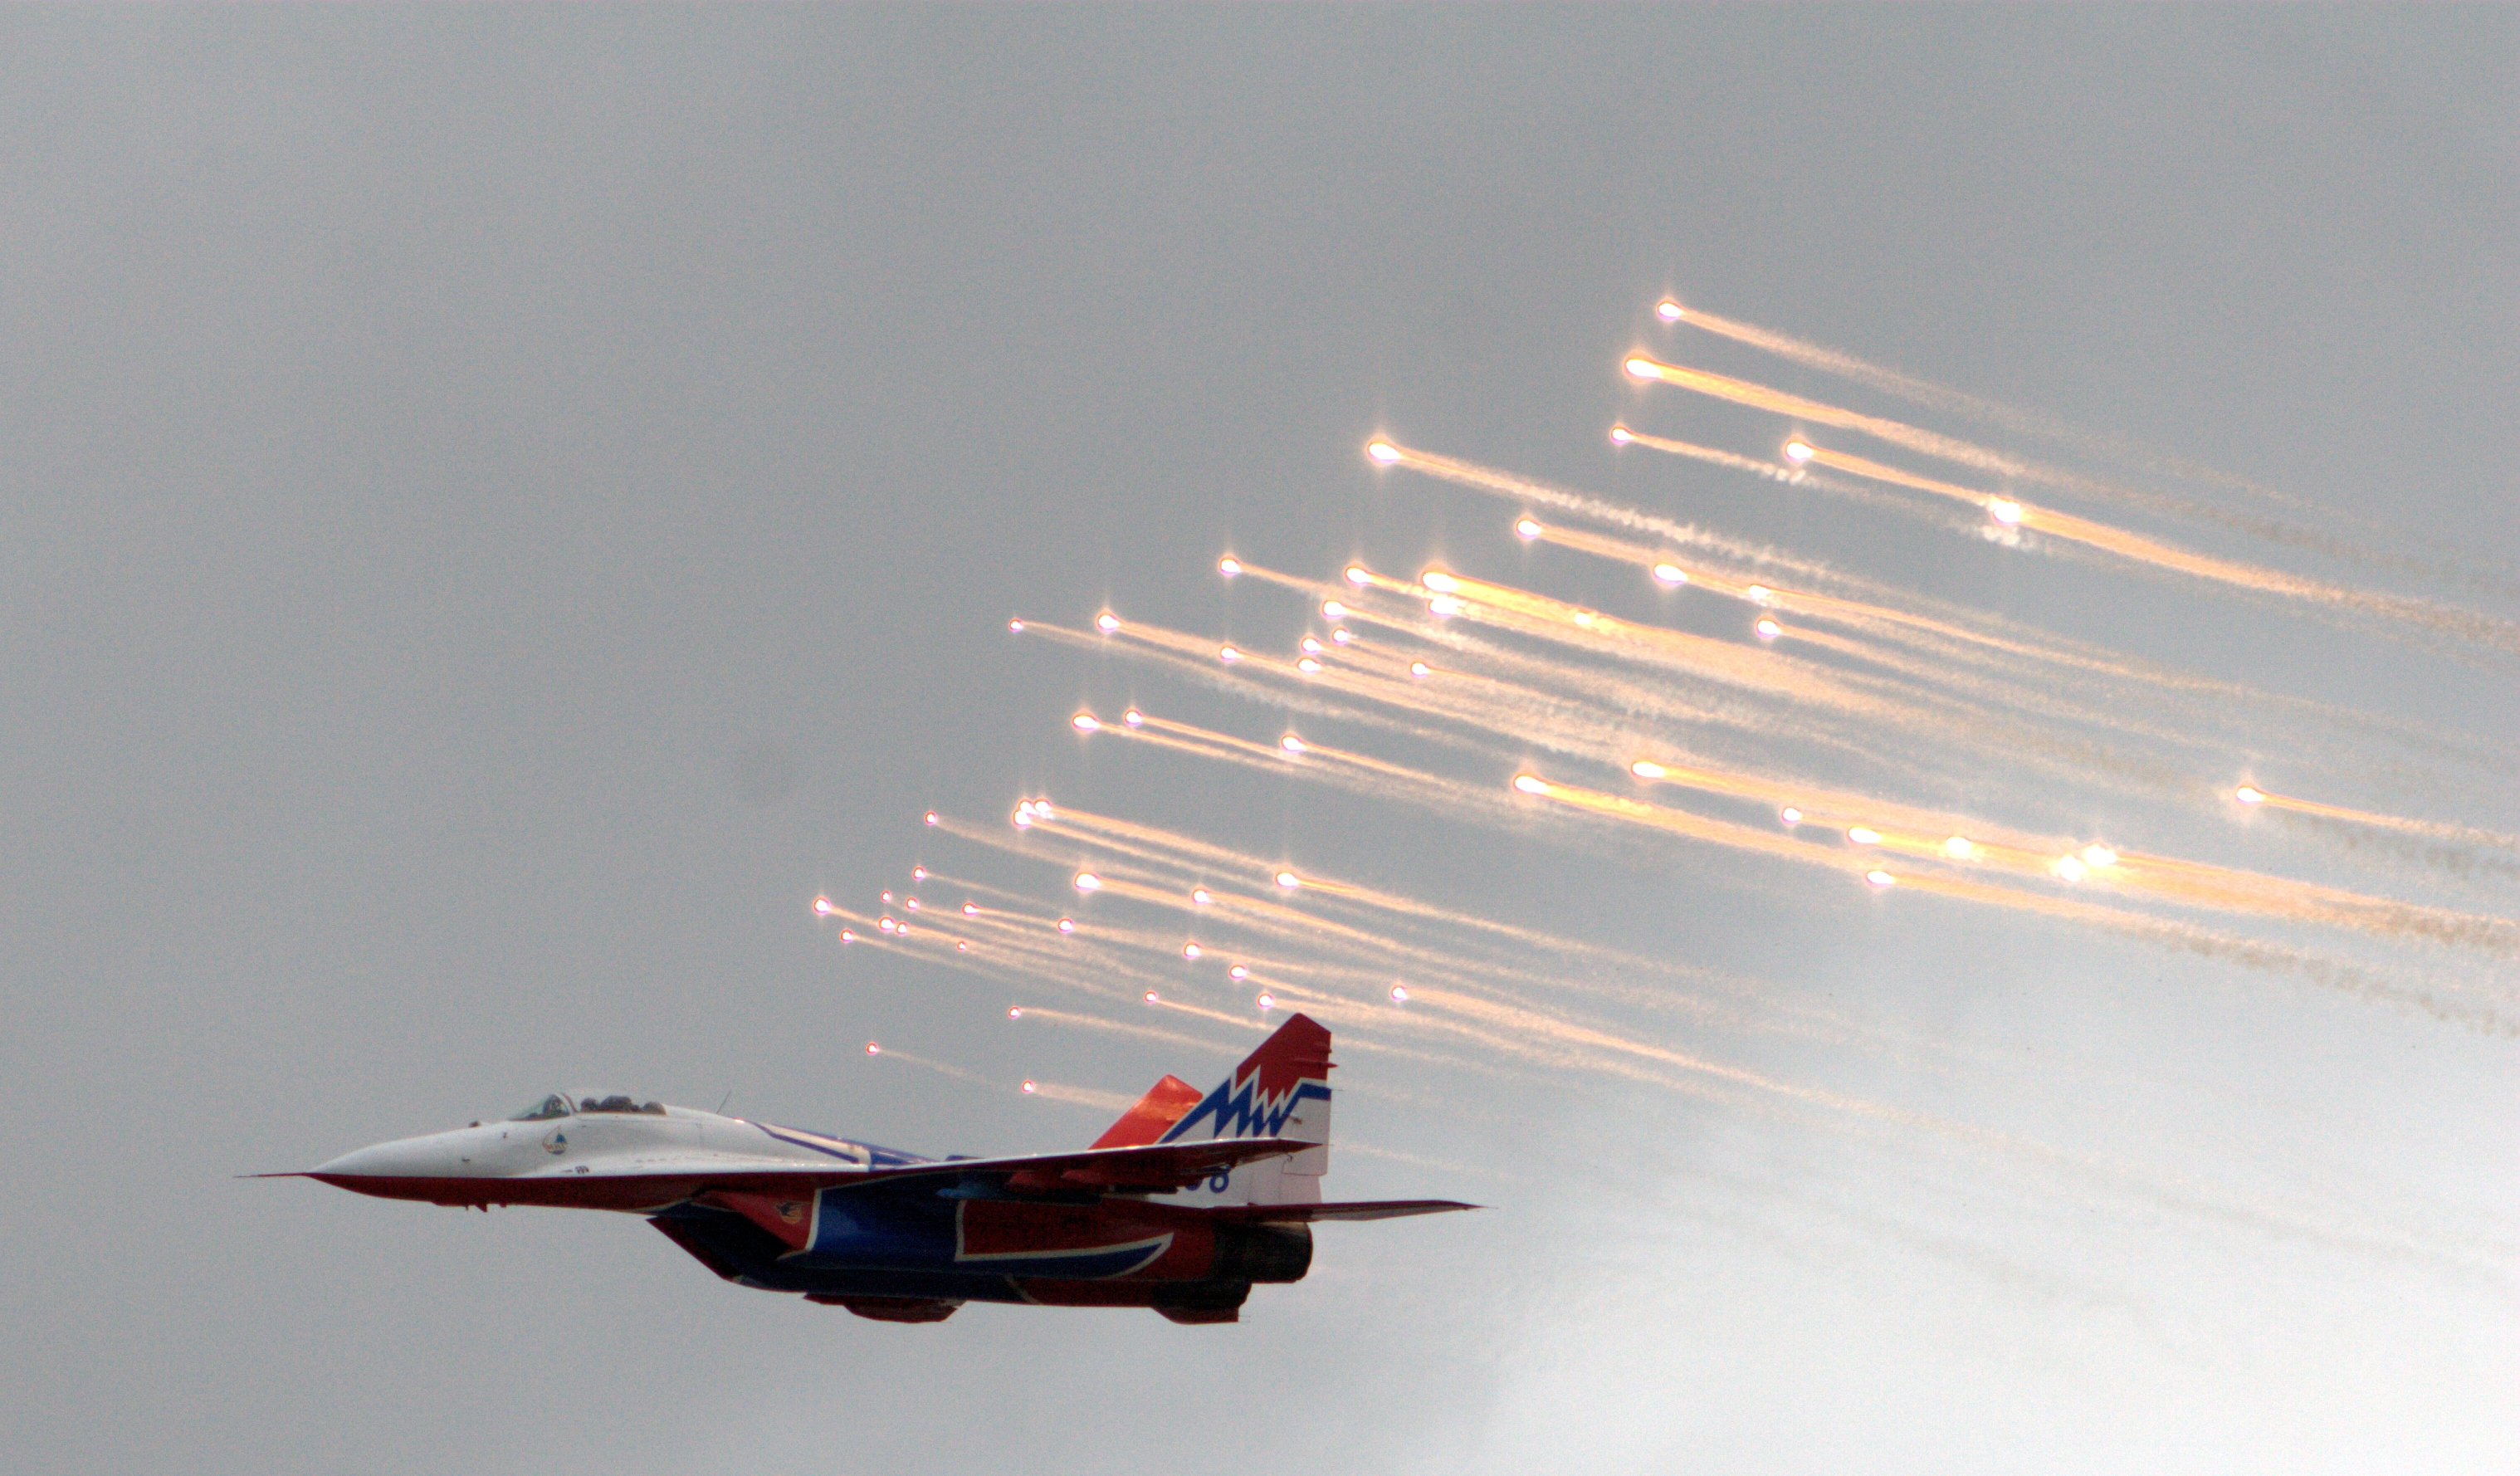 MiG-29%20releases%20flares.jpg